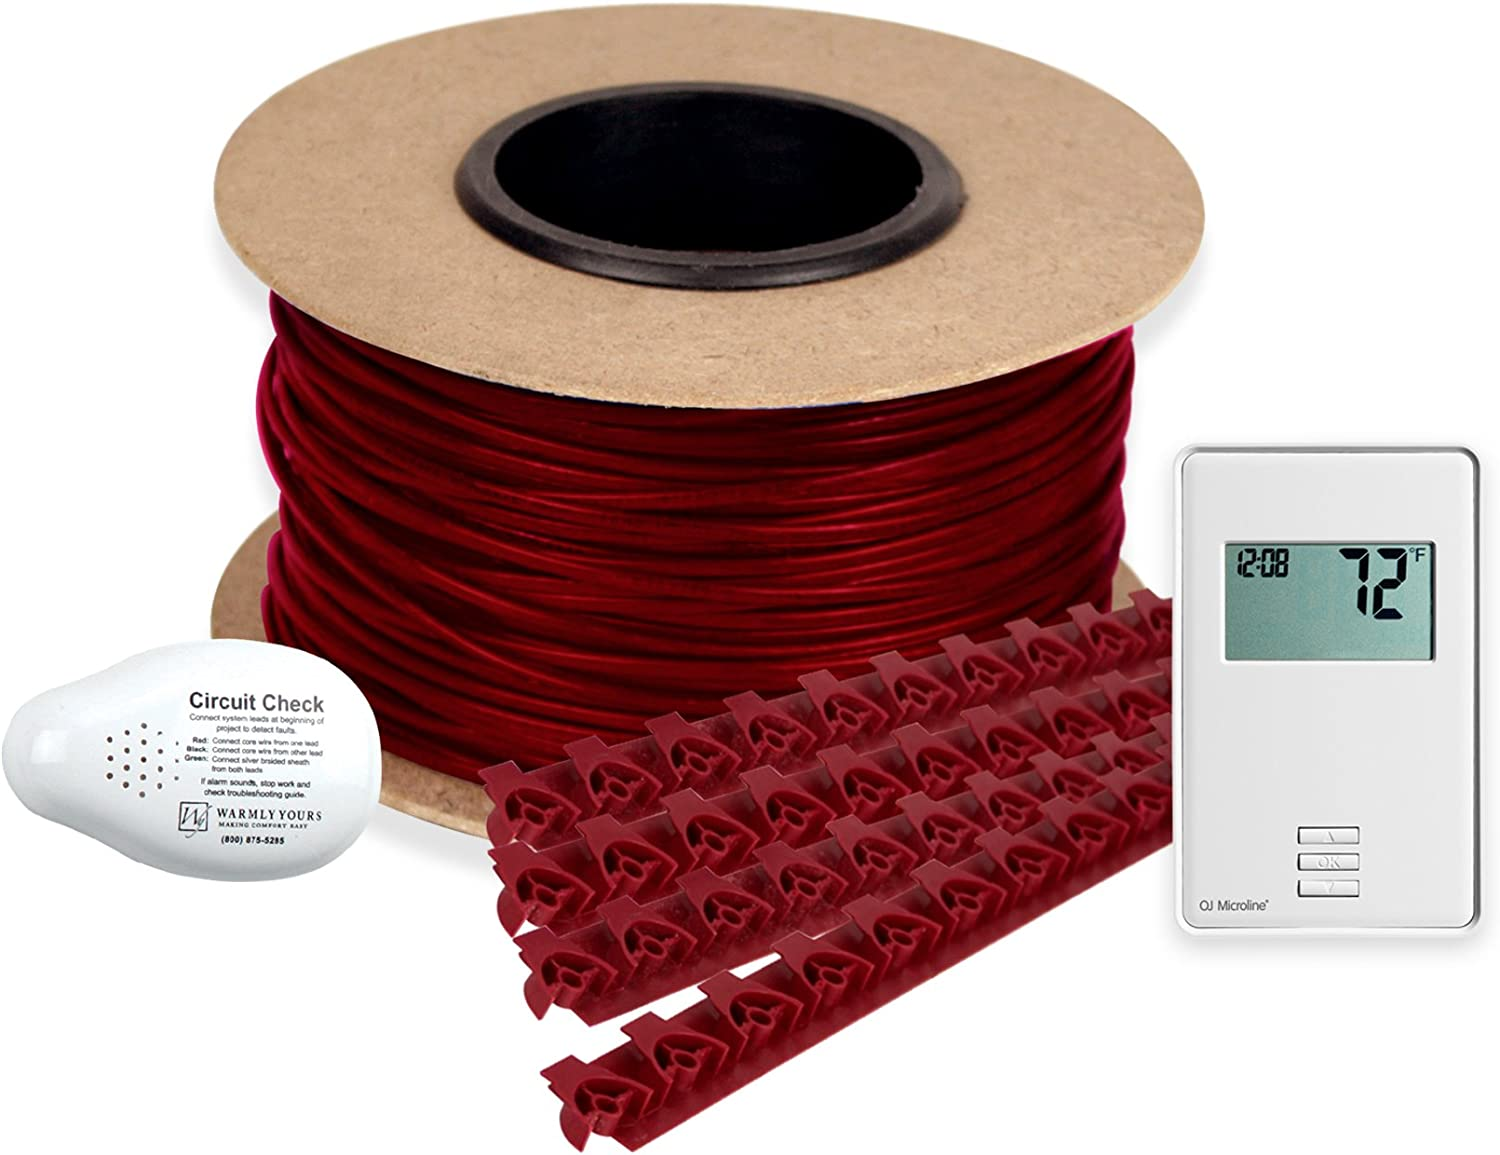 WarmlyYours TCT120-KIT-ON-040 Tempzone Electric Floor Heating Cable Kit with Strips, 40 ft. (10 sq. ft.)